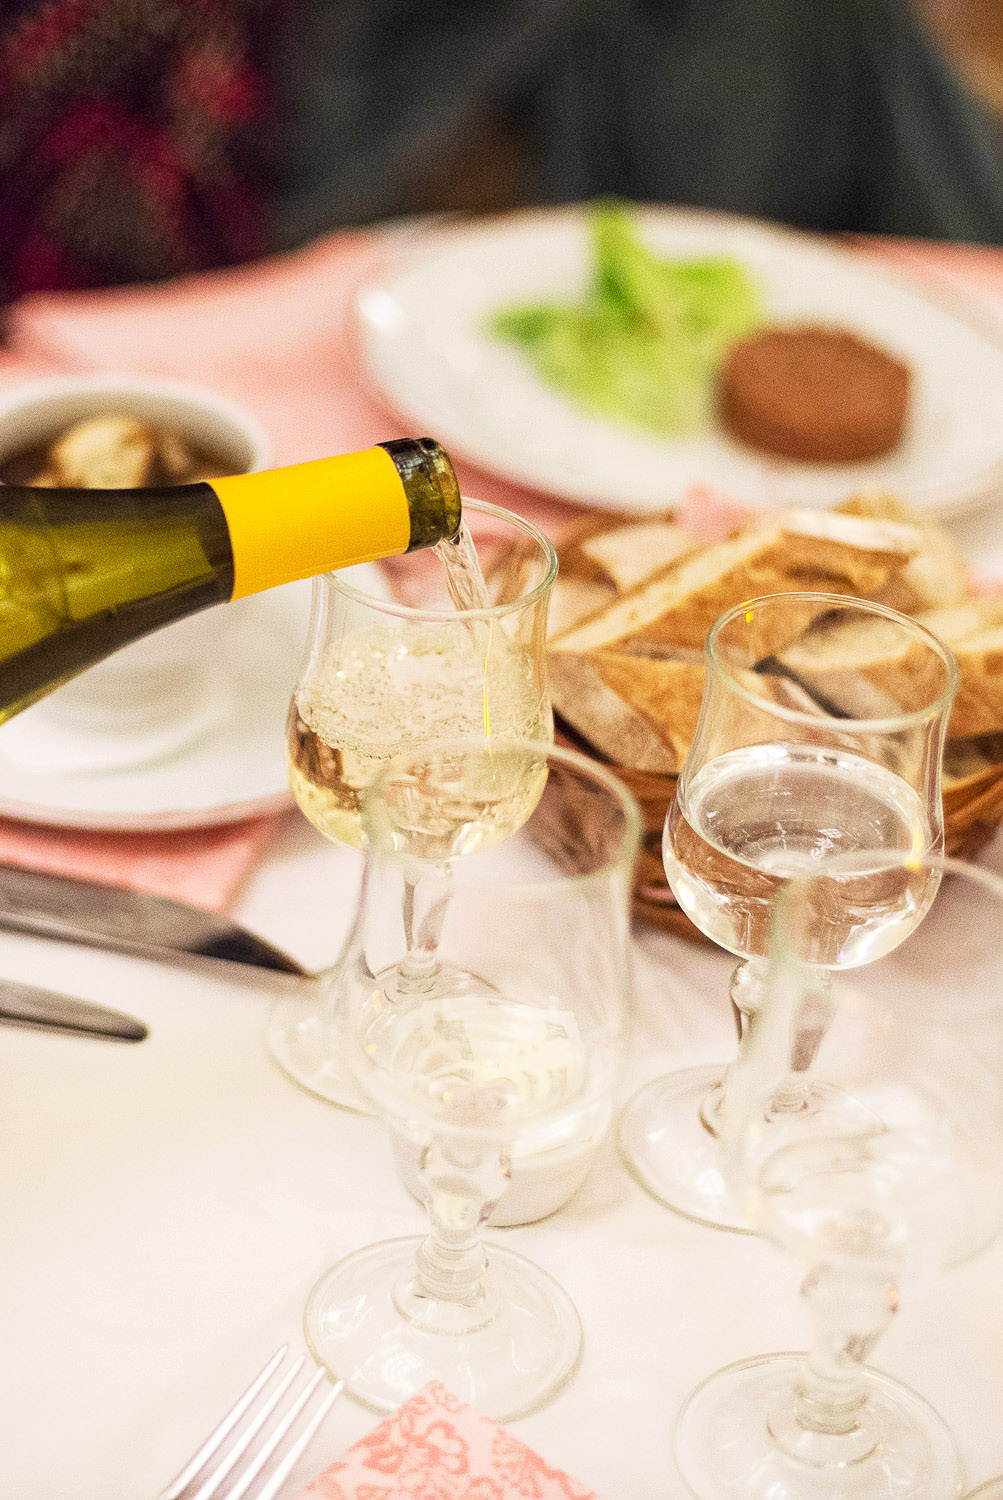 Brasserie Zédel, French dining in the heart of London